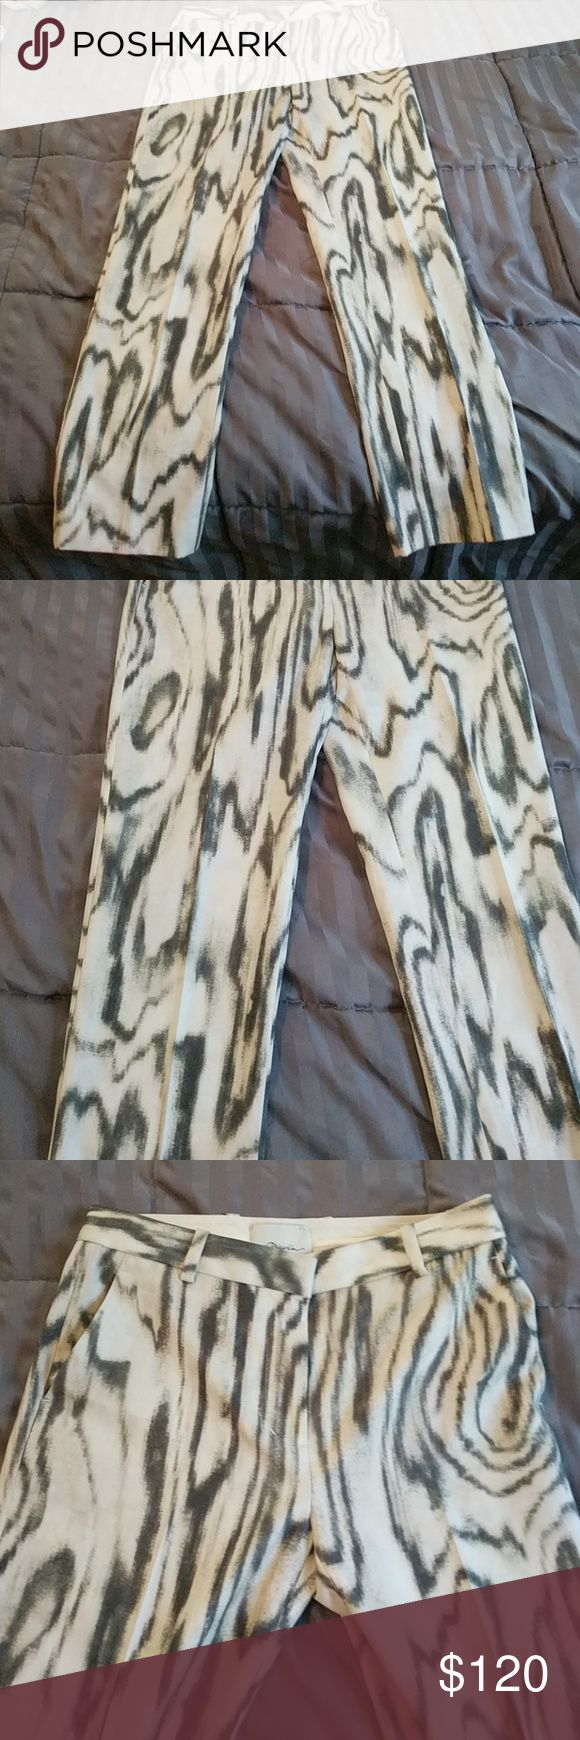 BNWT snake print pants Cotton pants with a snake skin print Has front and back pockets Also has belt loops Straight leg pants 3.1 Phillip Lim Pants